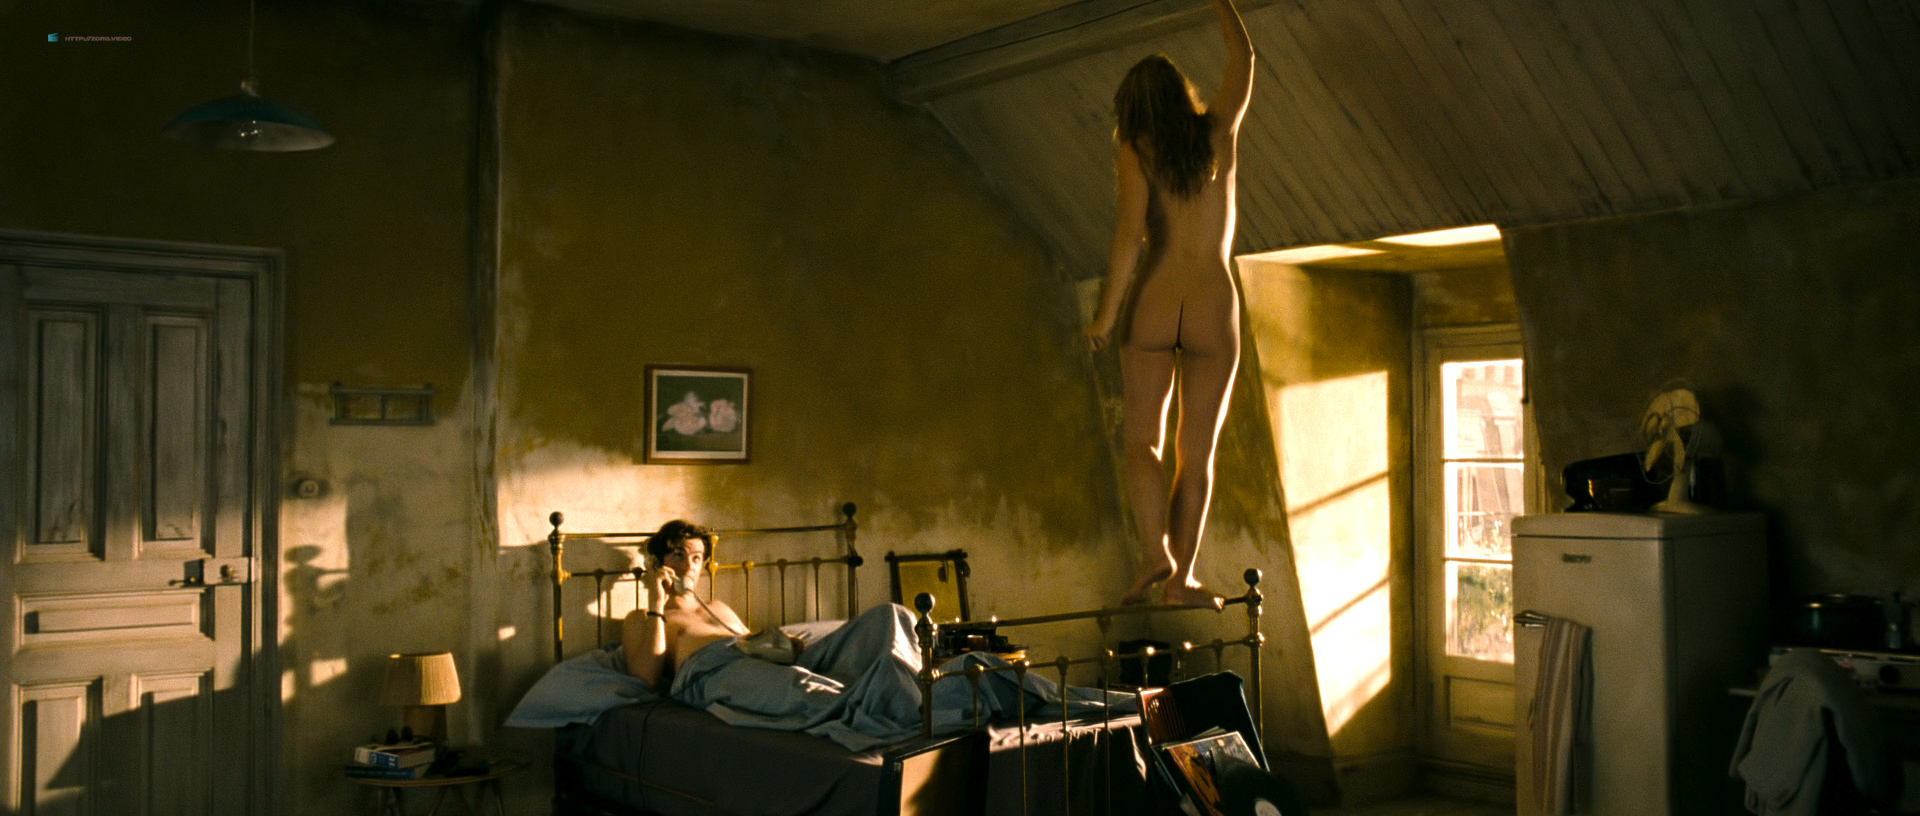 anne hathaway nude in on one day